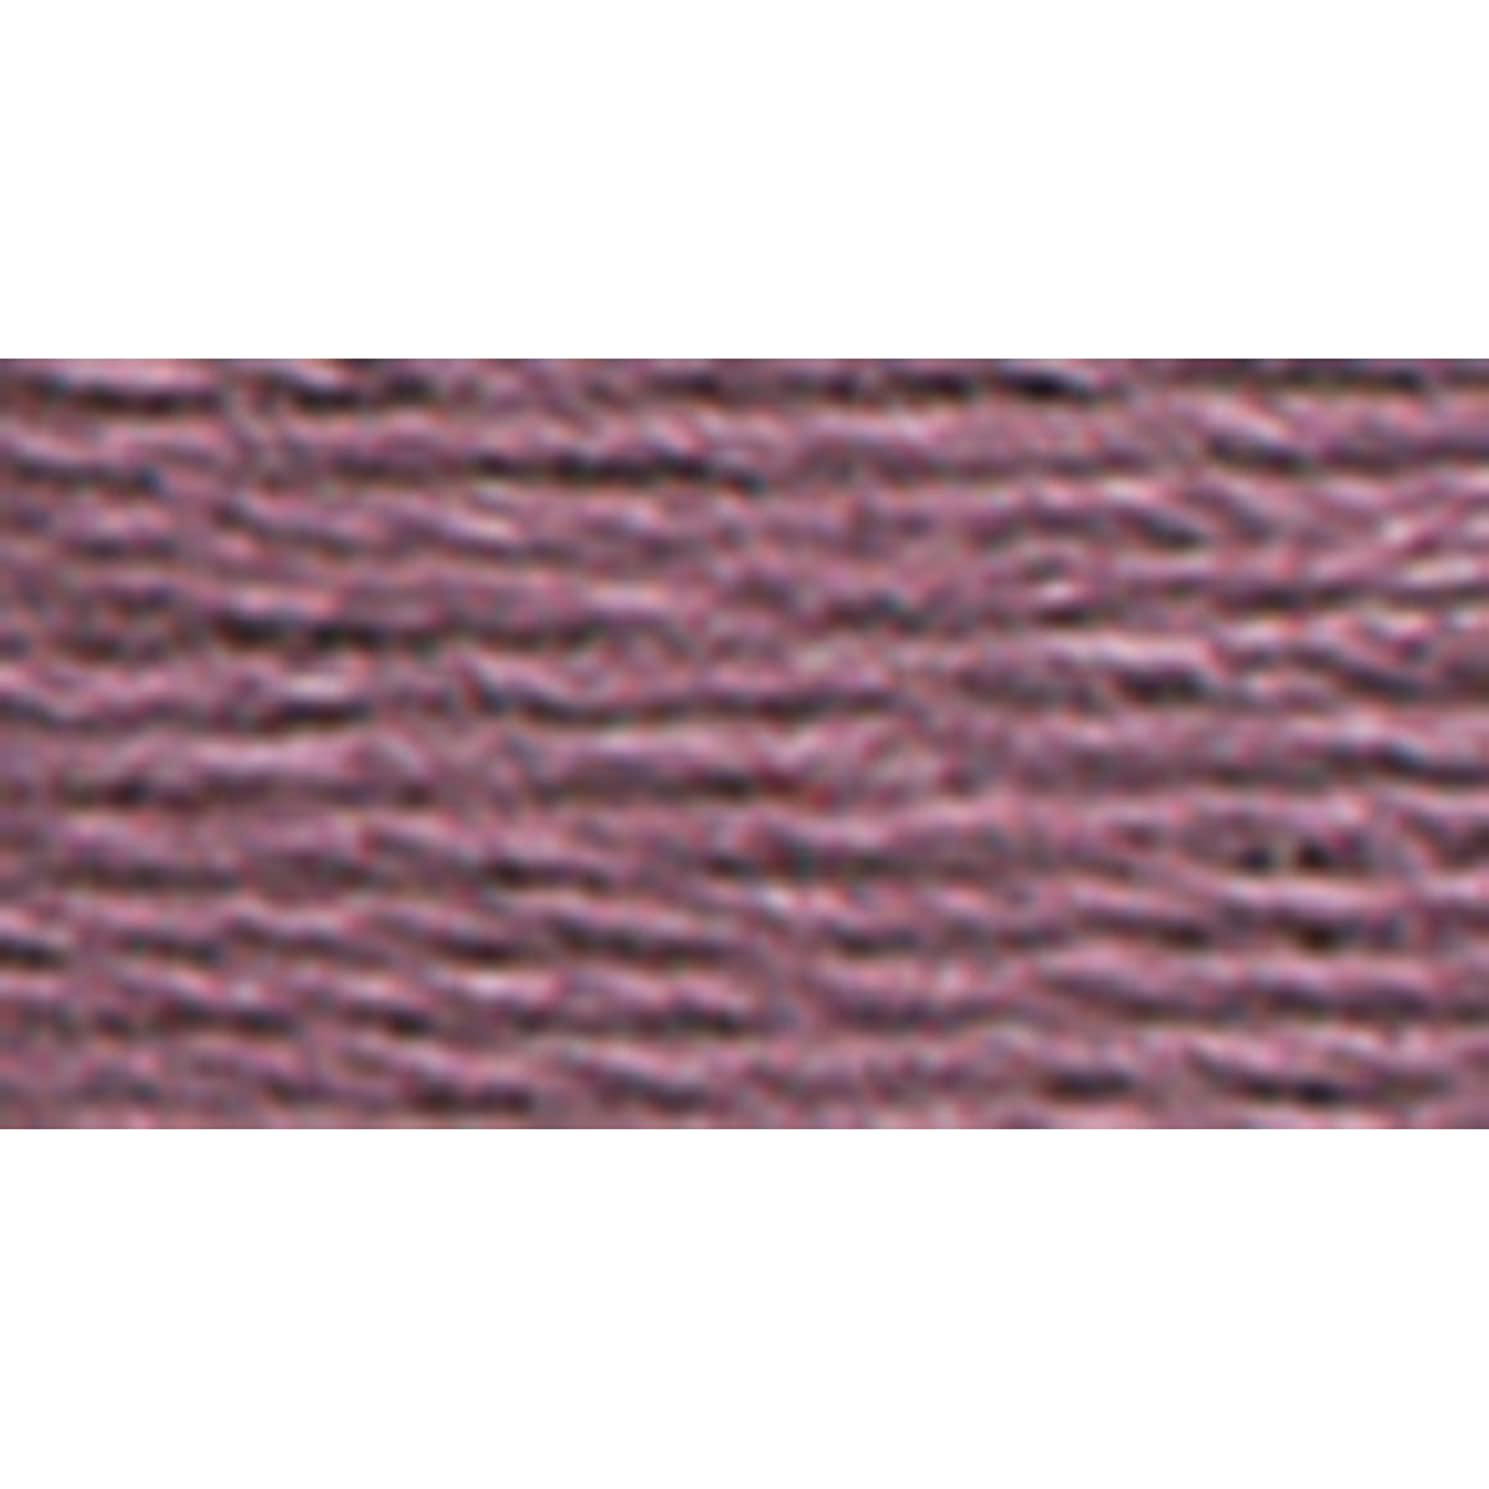 DMC 117-3041 Six Strand Embroidery Cotton Floss, Medium Antique Violet, 8.7-Yard